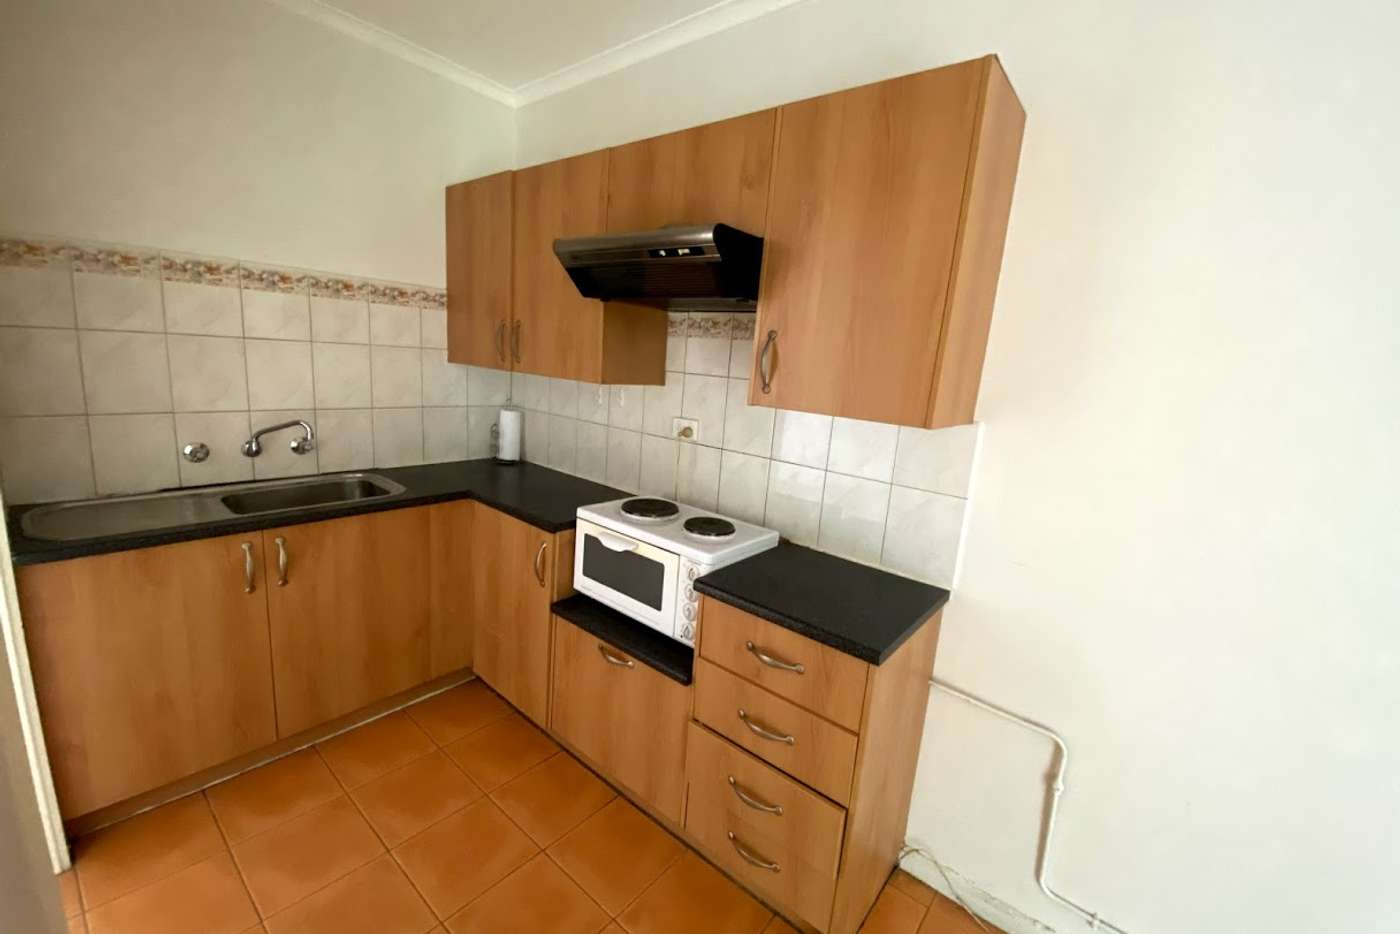 Sixth view of Homely unit listing, 5/132 Rupert Street, West Footscray VIC 3012